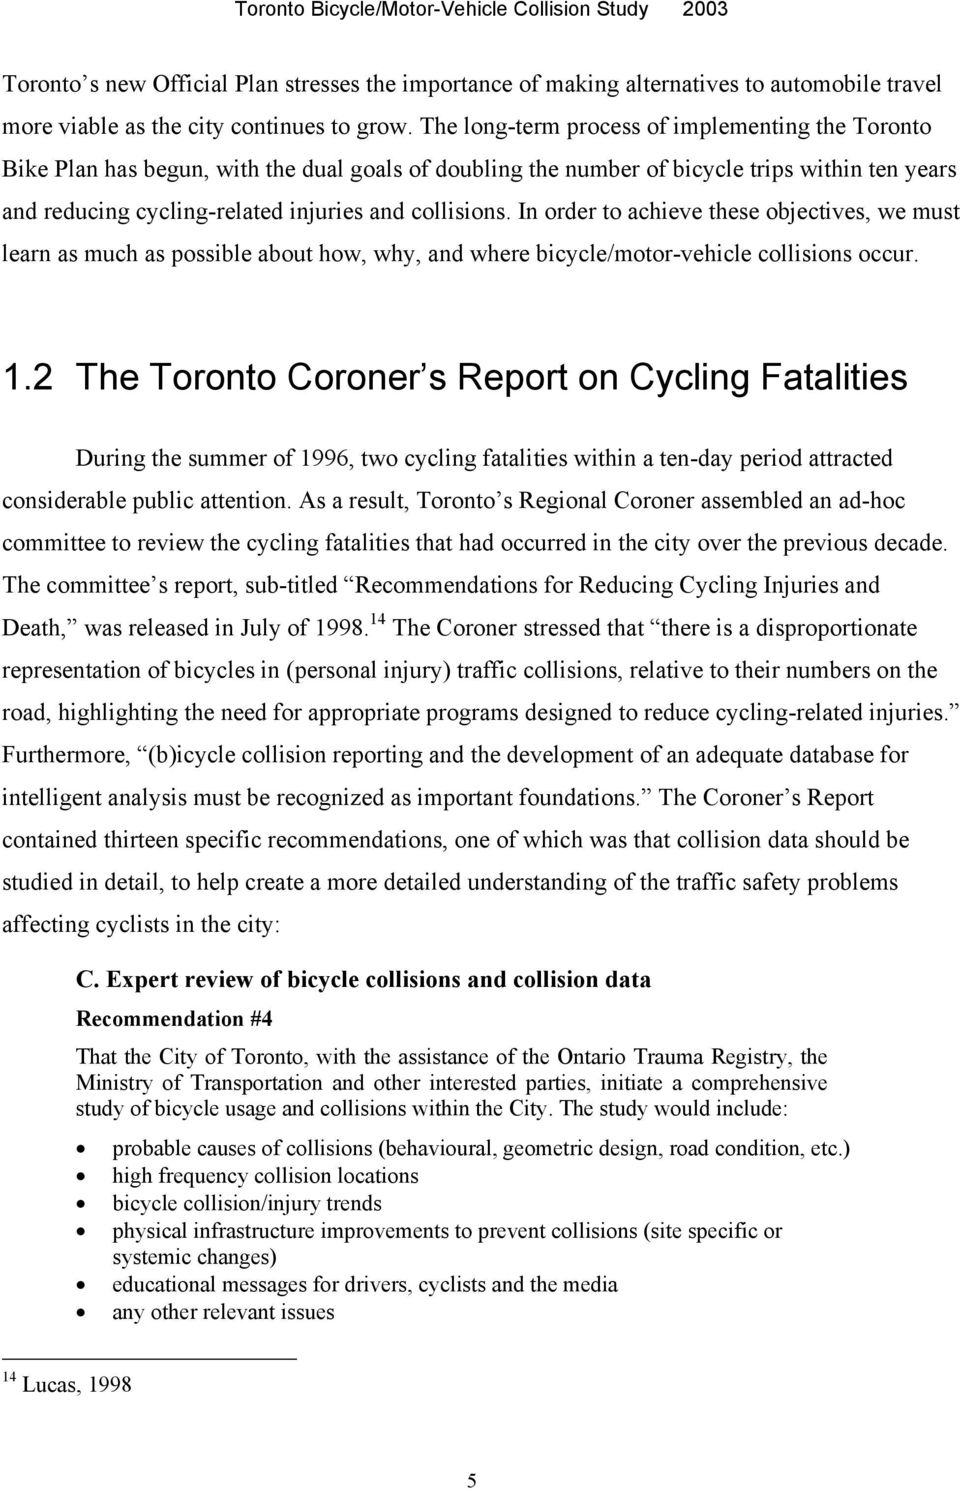 collisions. In order to achieve these objectives, we must learn as much as possible about how, why, and where bicycle/motor-vehicle collisions occur. 1.